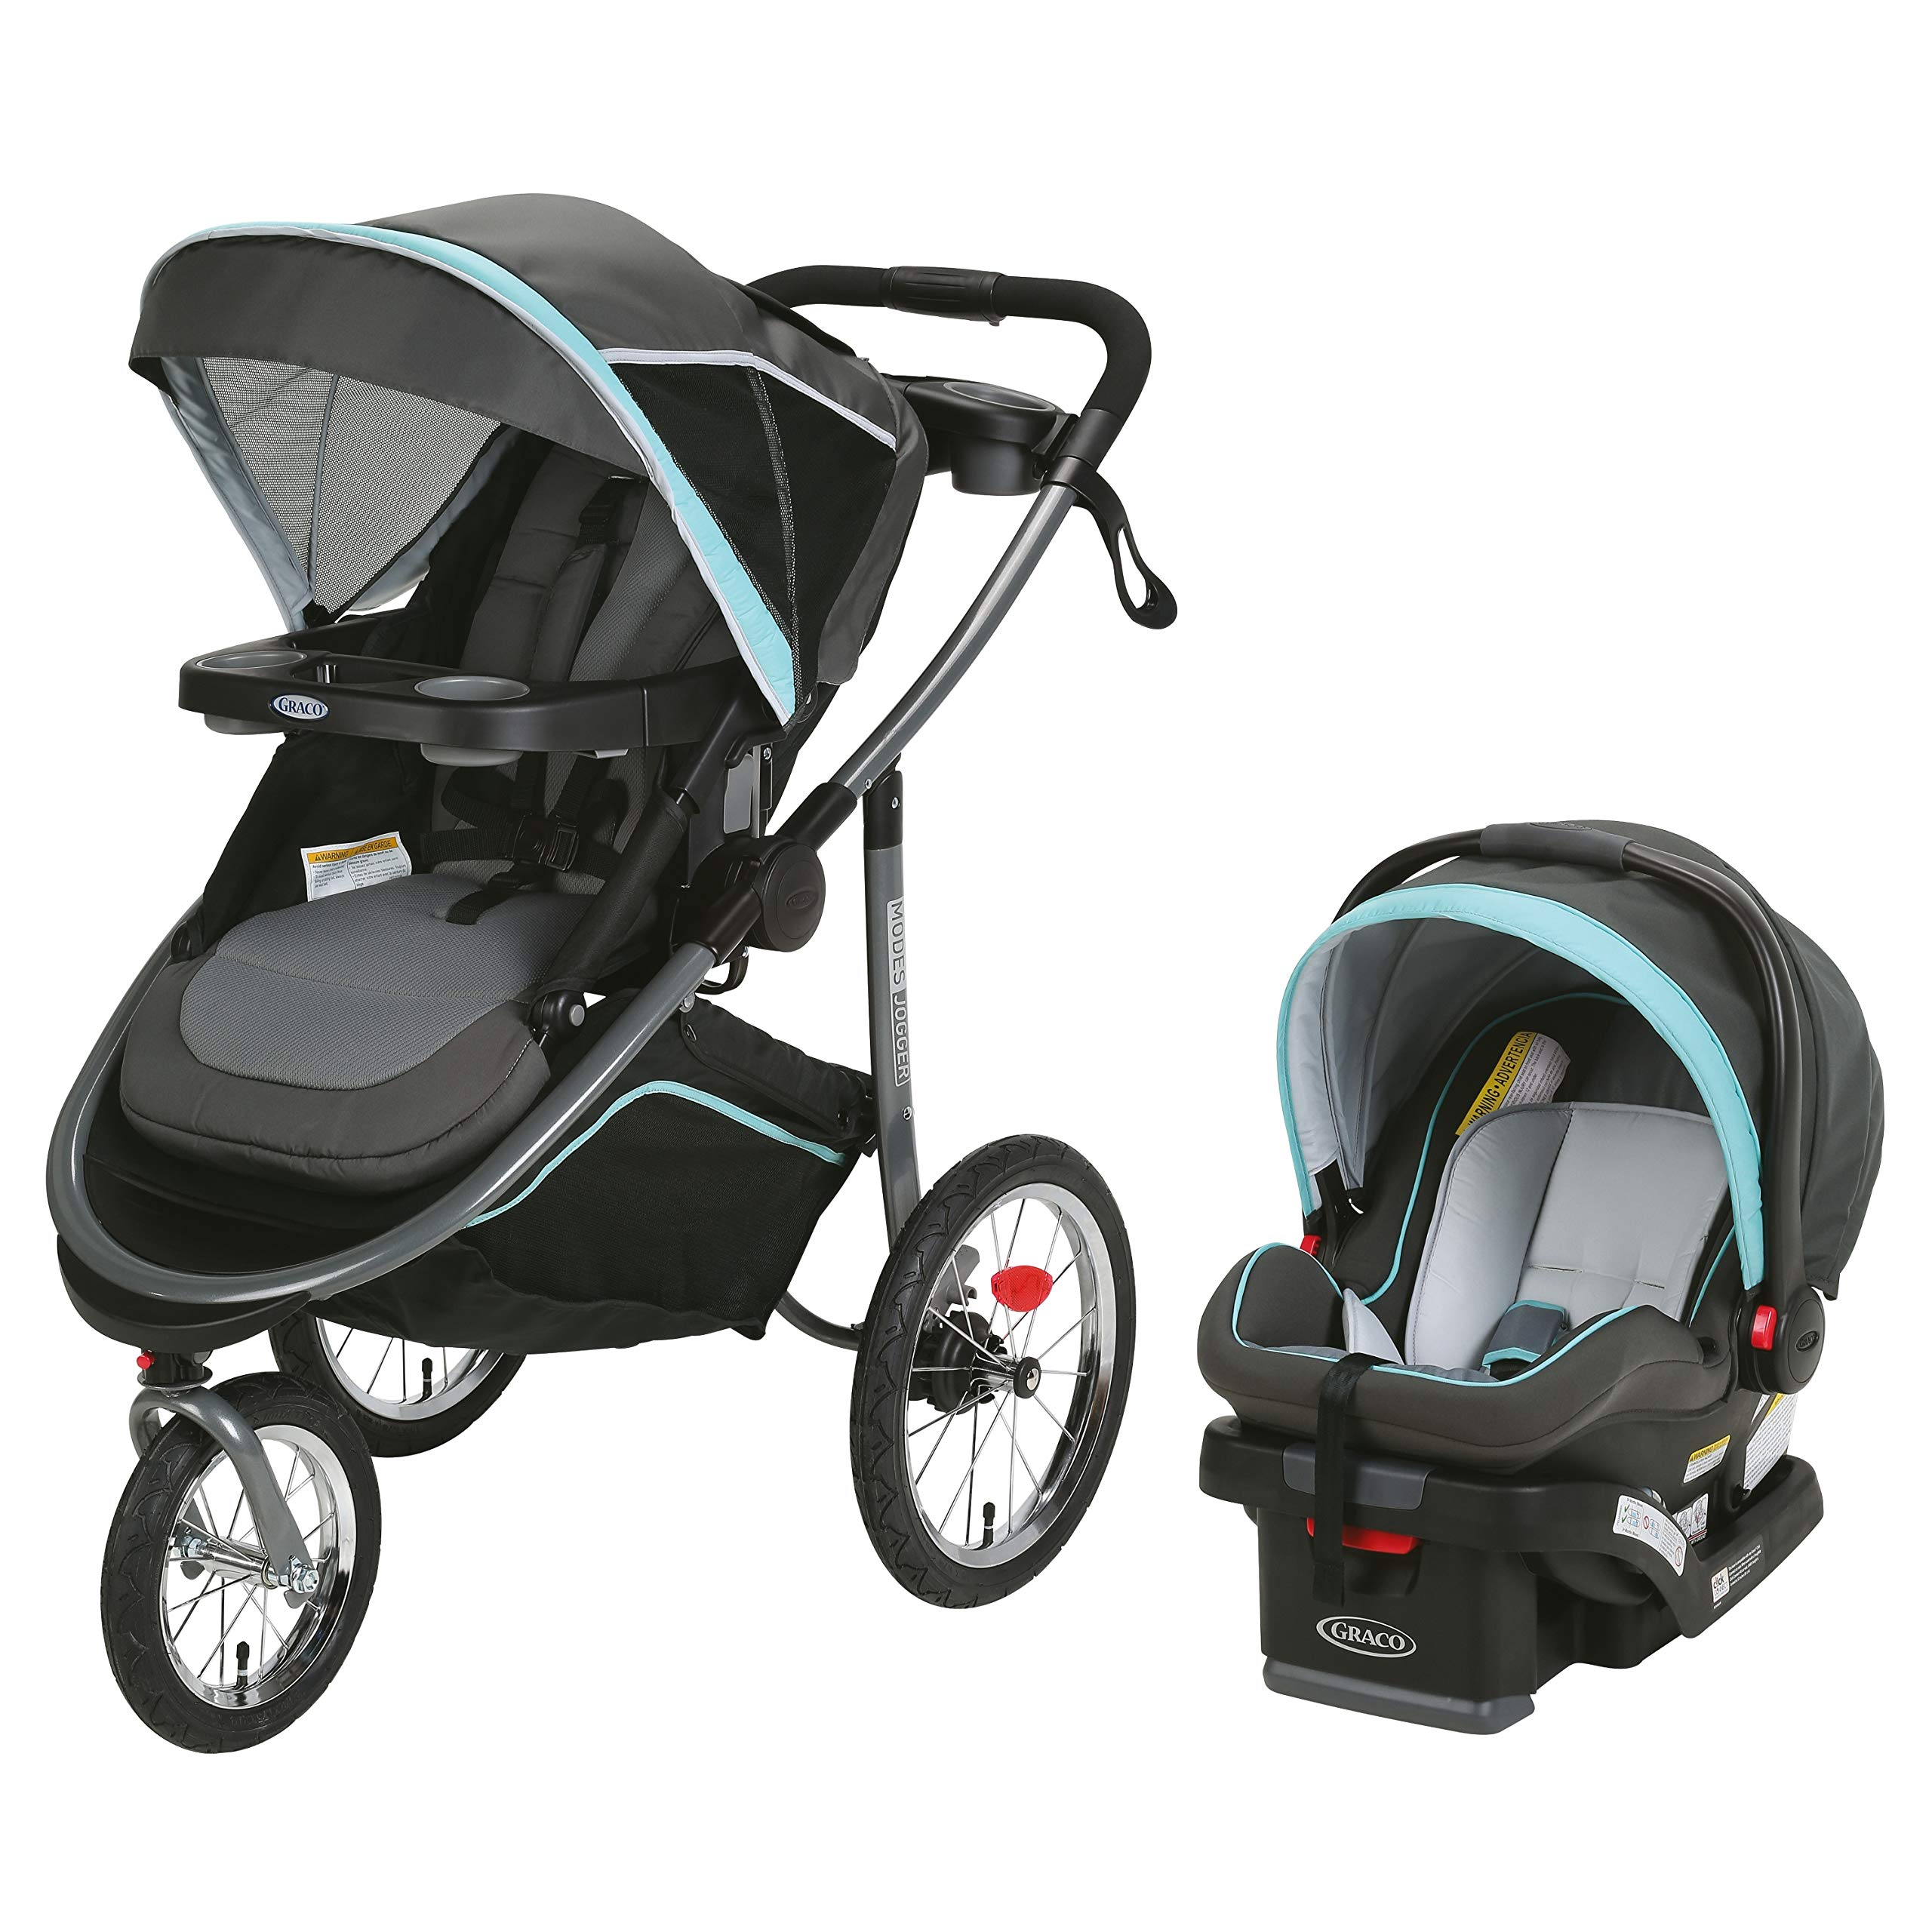 Graco Modes Jogger Travel System Stroller, Tenley by Graco (Image #1)